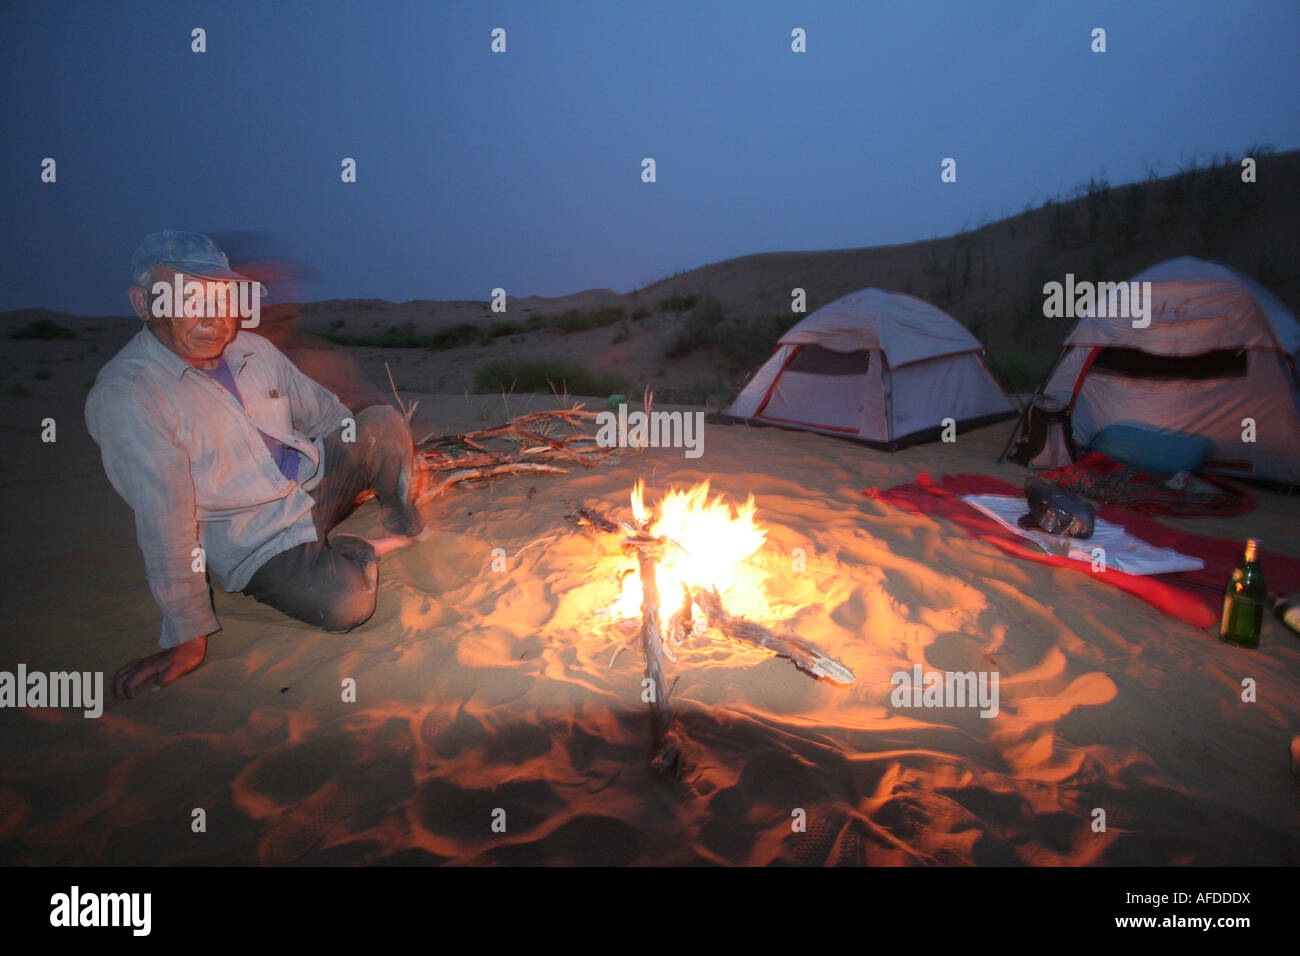 Camp in the Tengger desert camel driver Ningxia China August 2007 Stock Photo